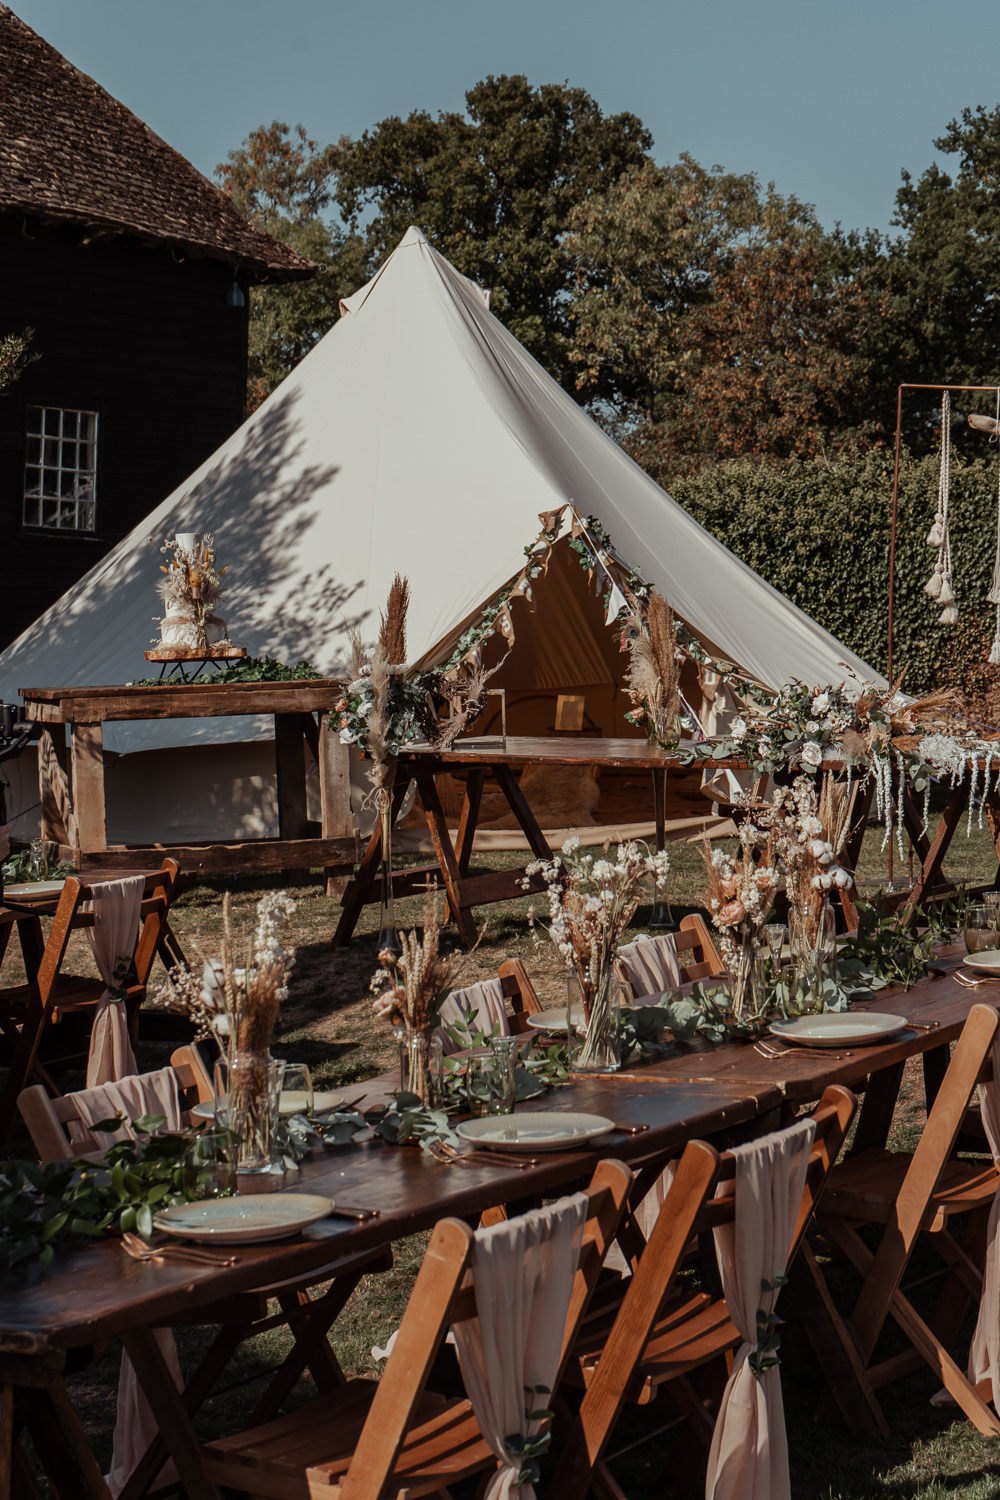 Outdoor Reception Bell Tent Backdrop Rustic Wooden Tables Decor Intimate Wedding Ideas Imogen Eve Photography